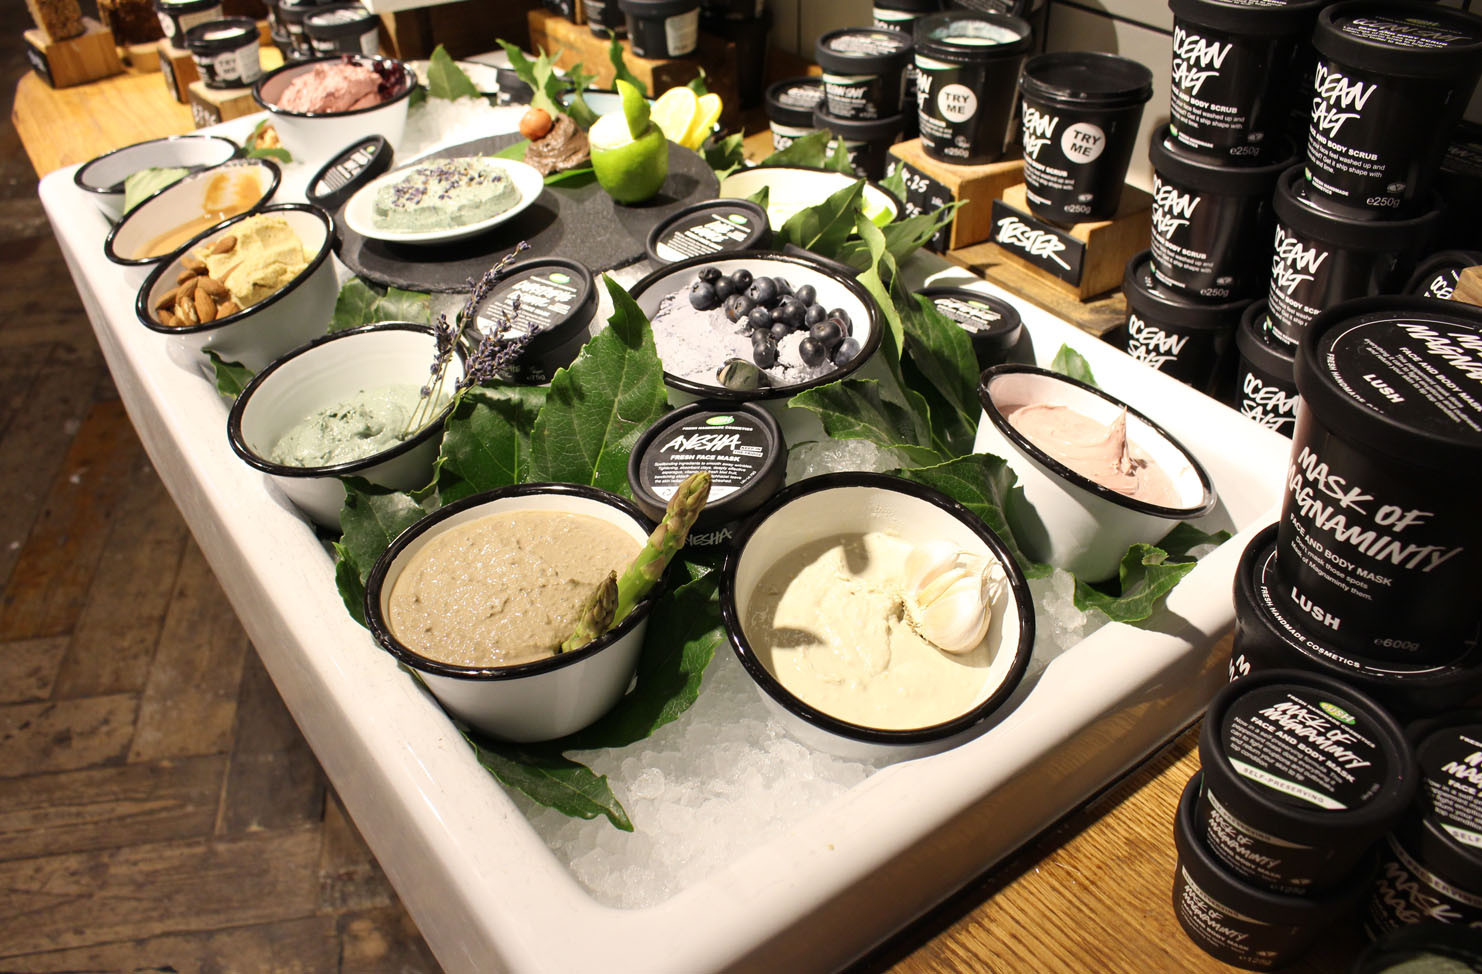 DIY Lush Face Mask  My Visit to Lush Oxford Street Fashion & Beauty Blog for